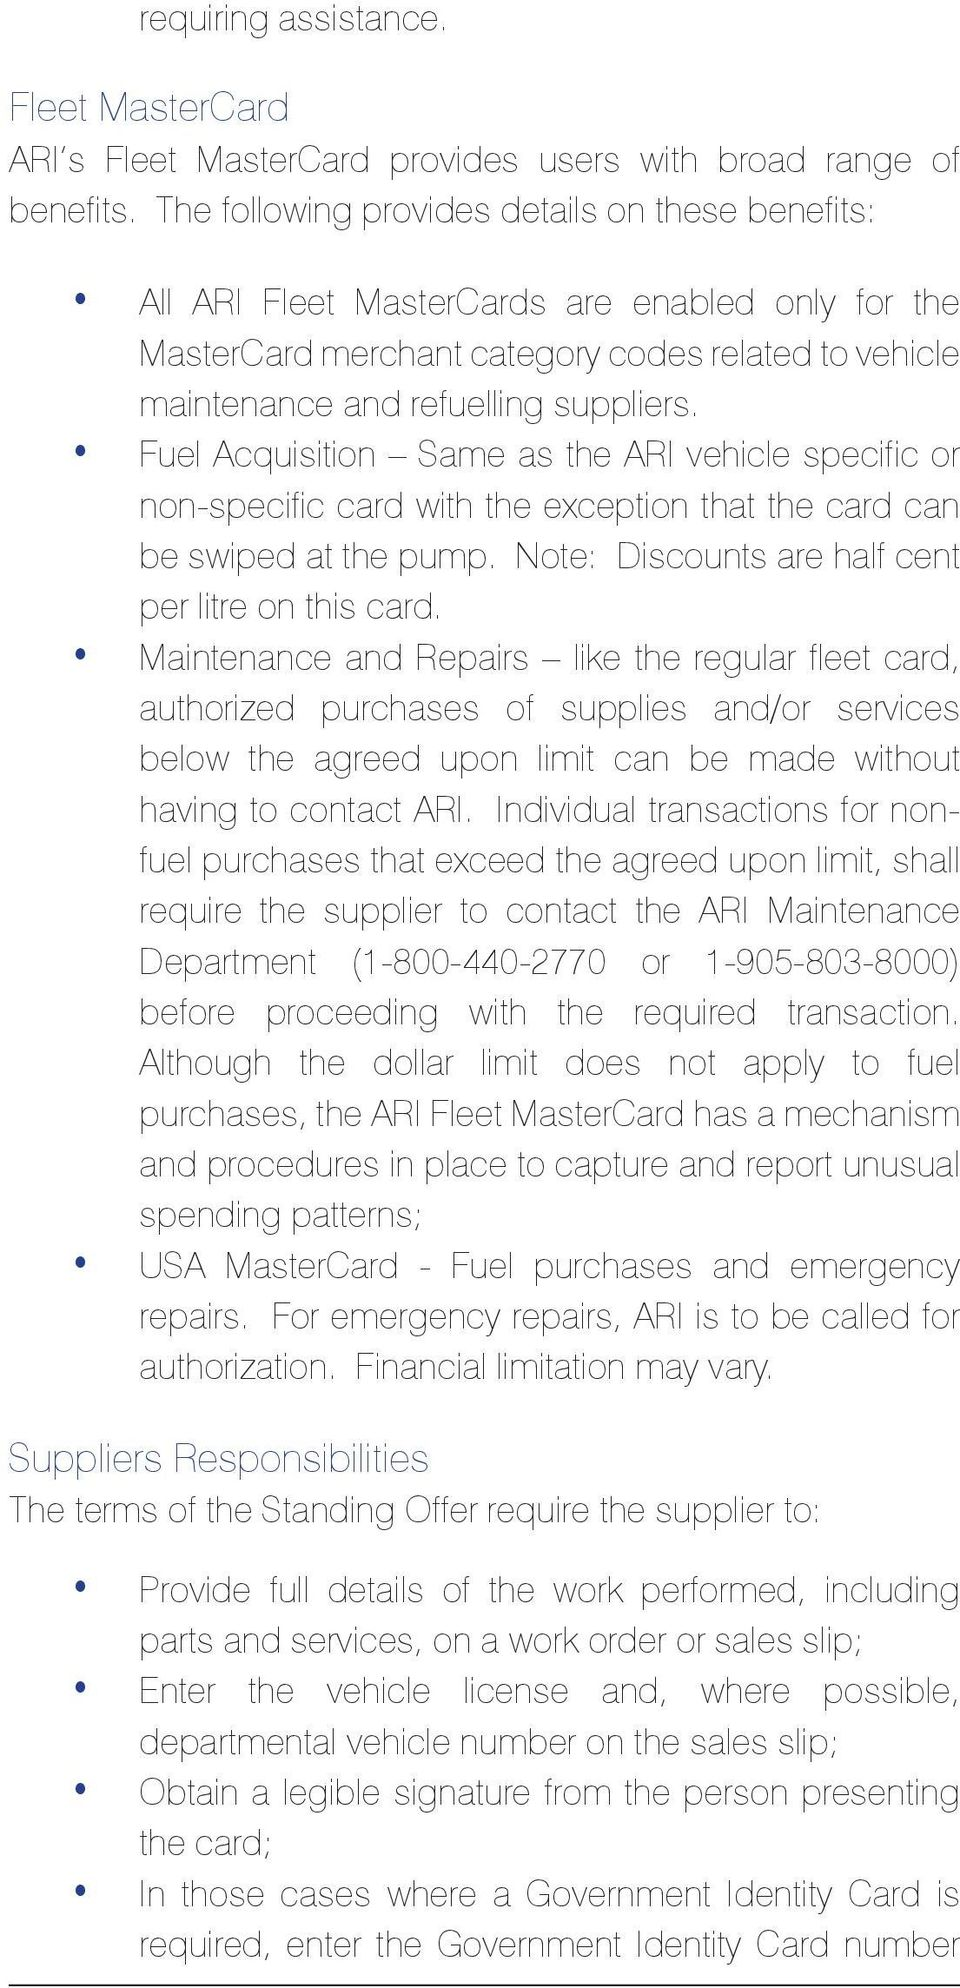 Fuel Acquisition Same as the ARI vehicle specific or non-specific card with the exception that the card can be swiped at the pump. Note: Discounts are half cent per litre on this card.